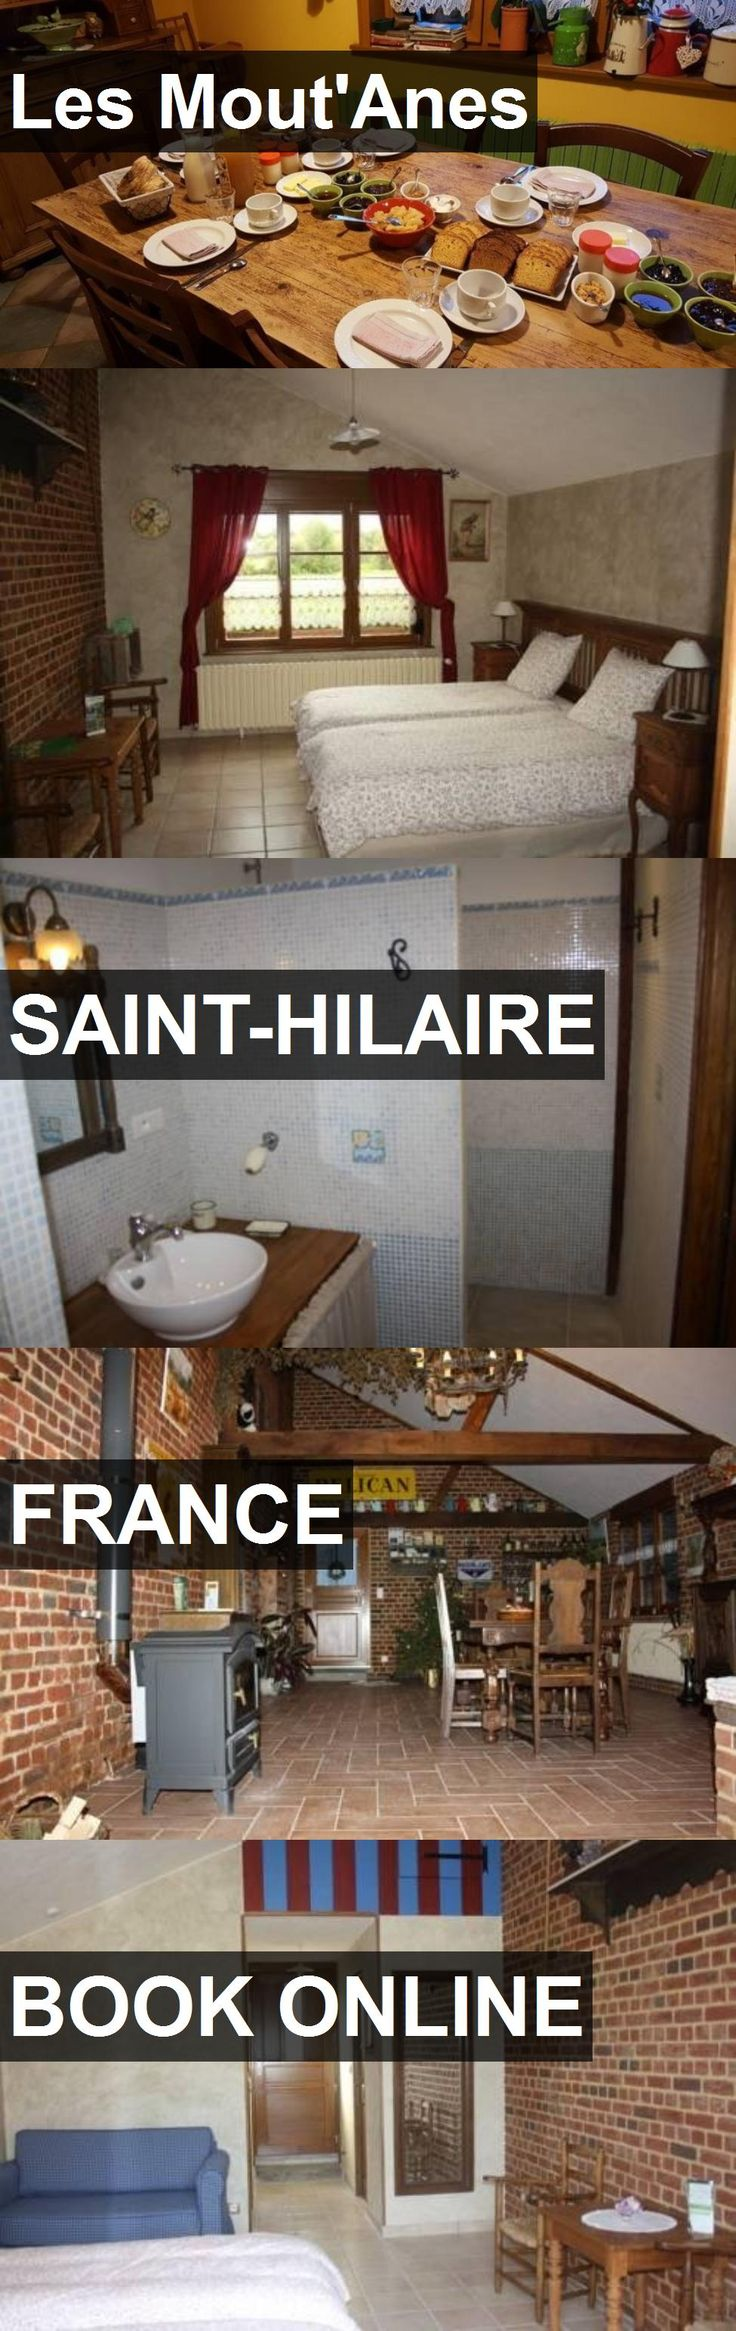 Hotel Les Mout'Anes in Saint-Hilaire, France. For more information, photos, reviews and best prices please follow the link. #France #Saint-Hilaire #hotel #travel #vacation